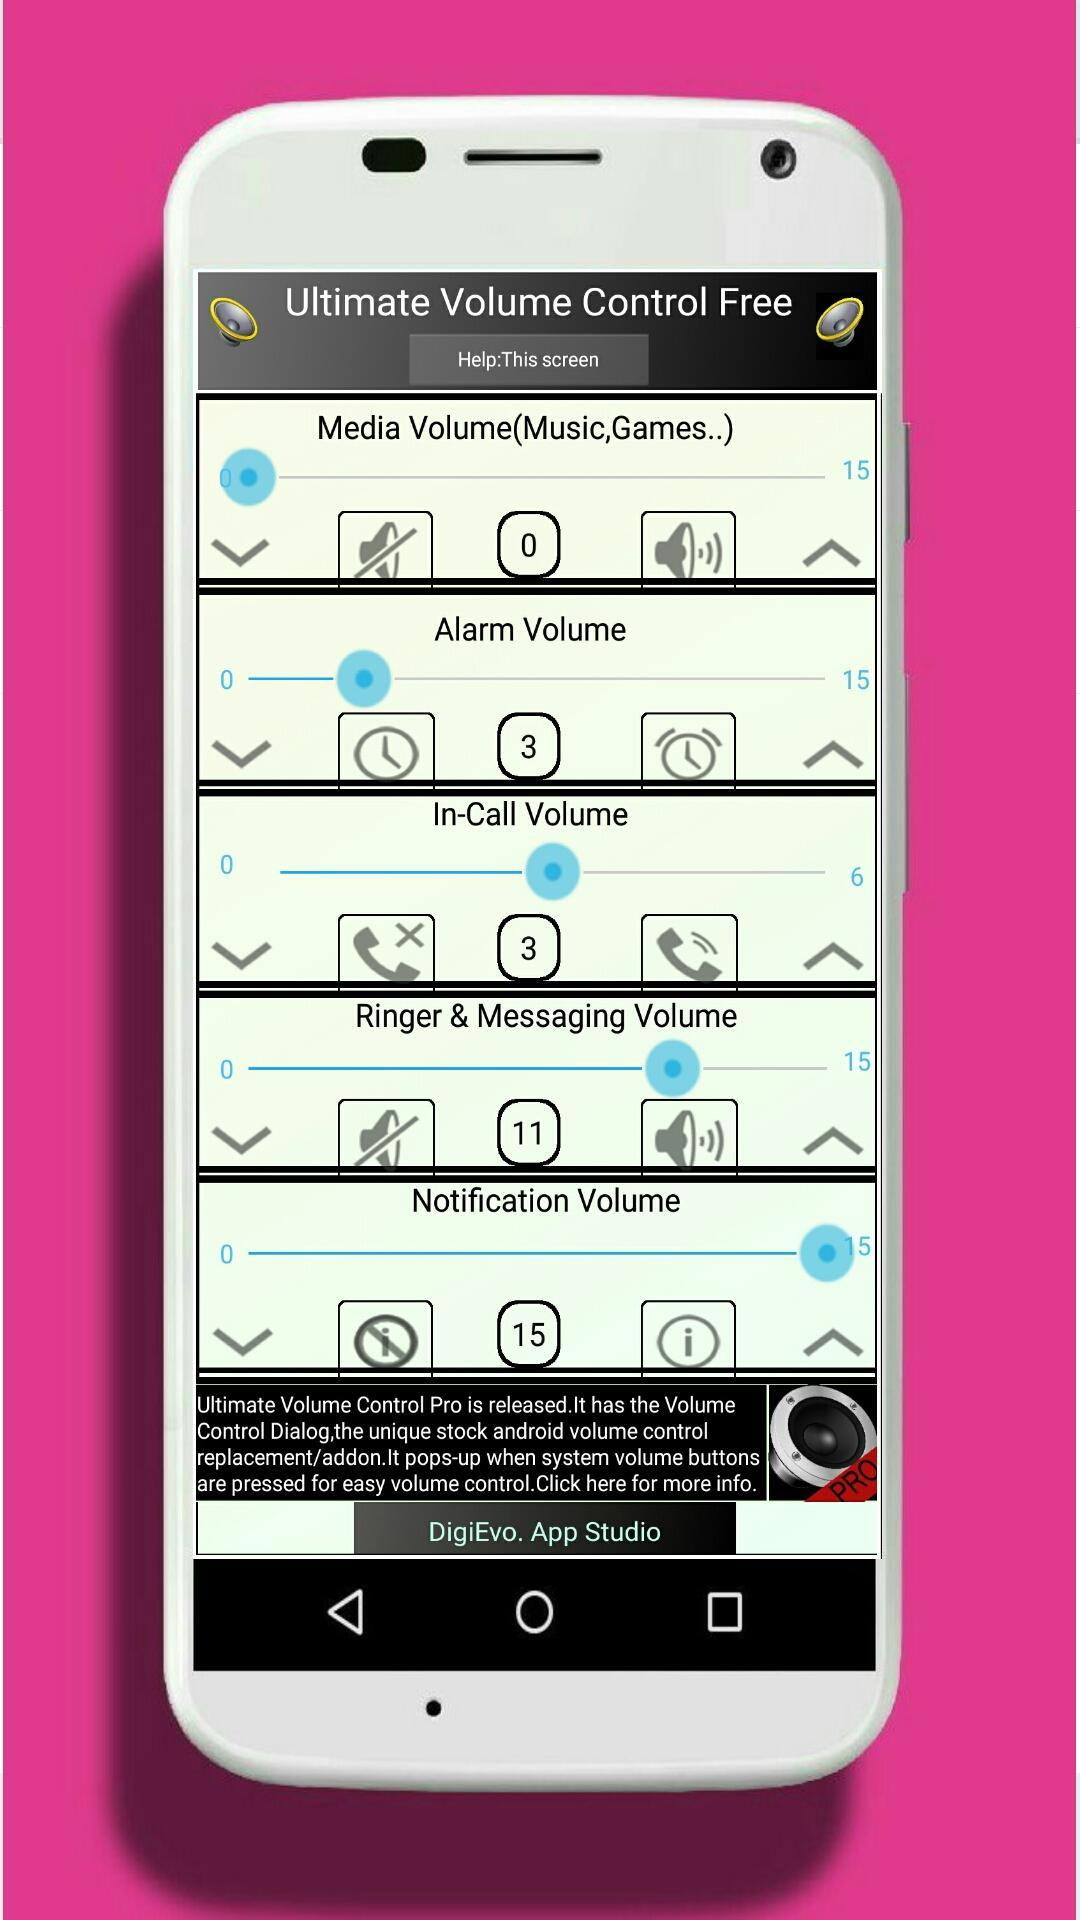 Ultimate Volume Control Free for Android - APK Download